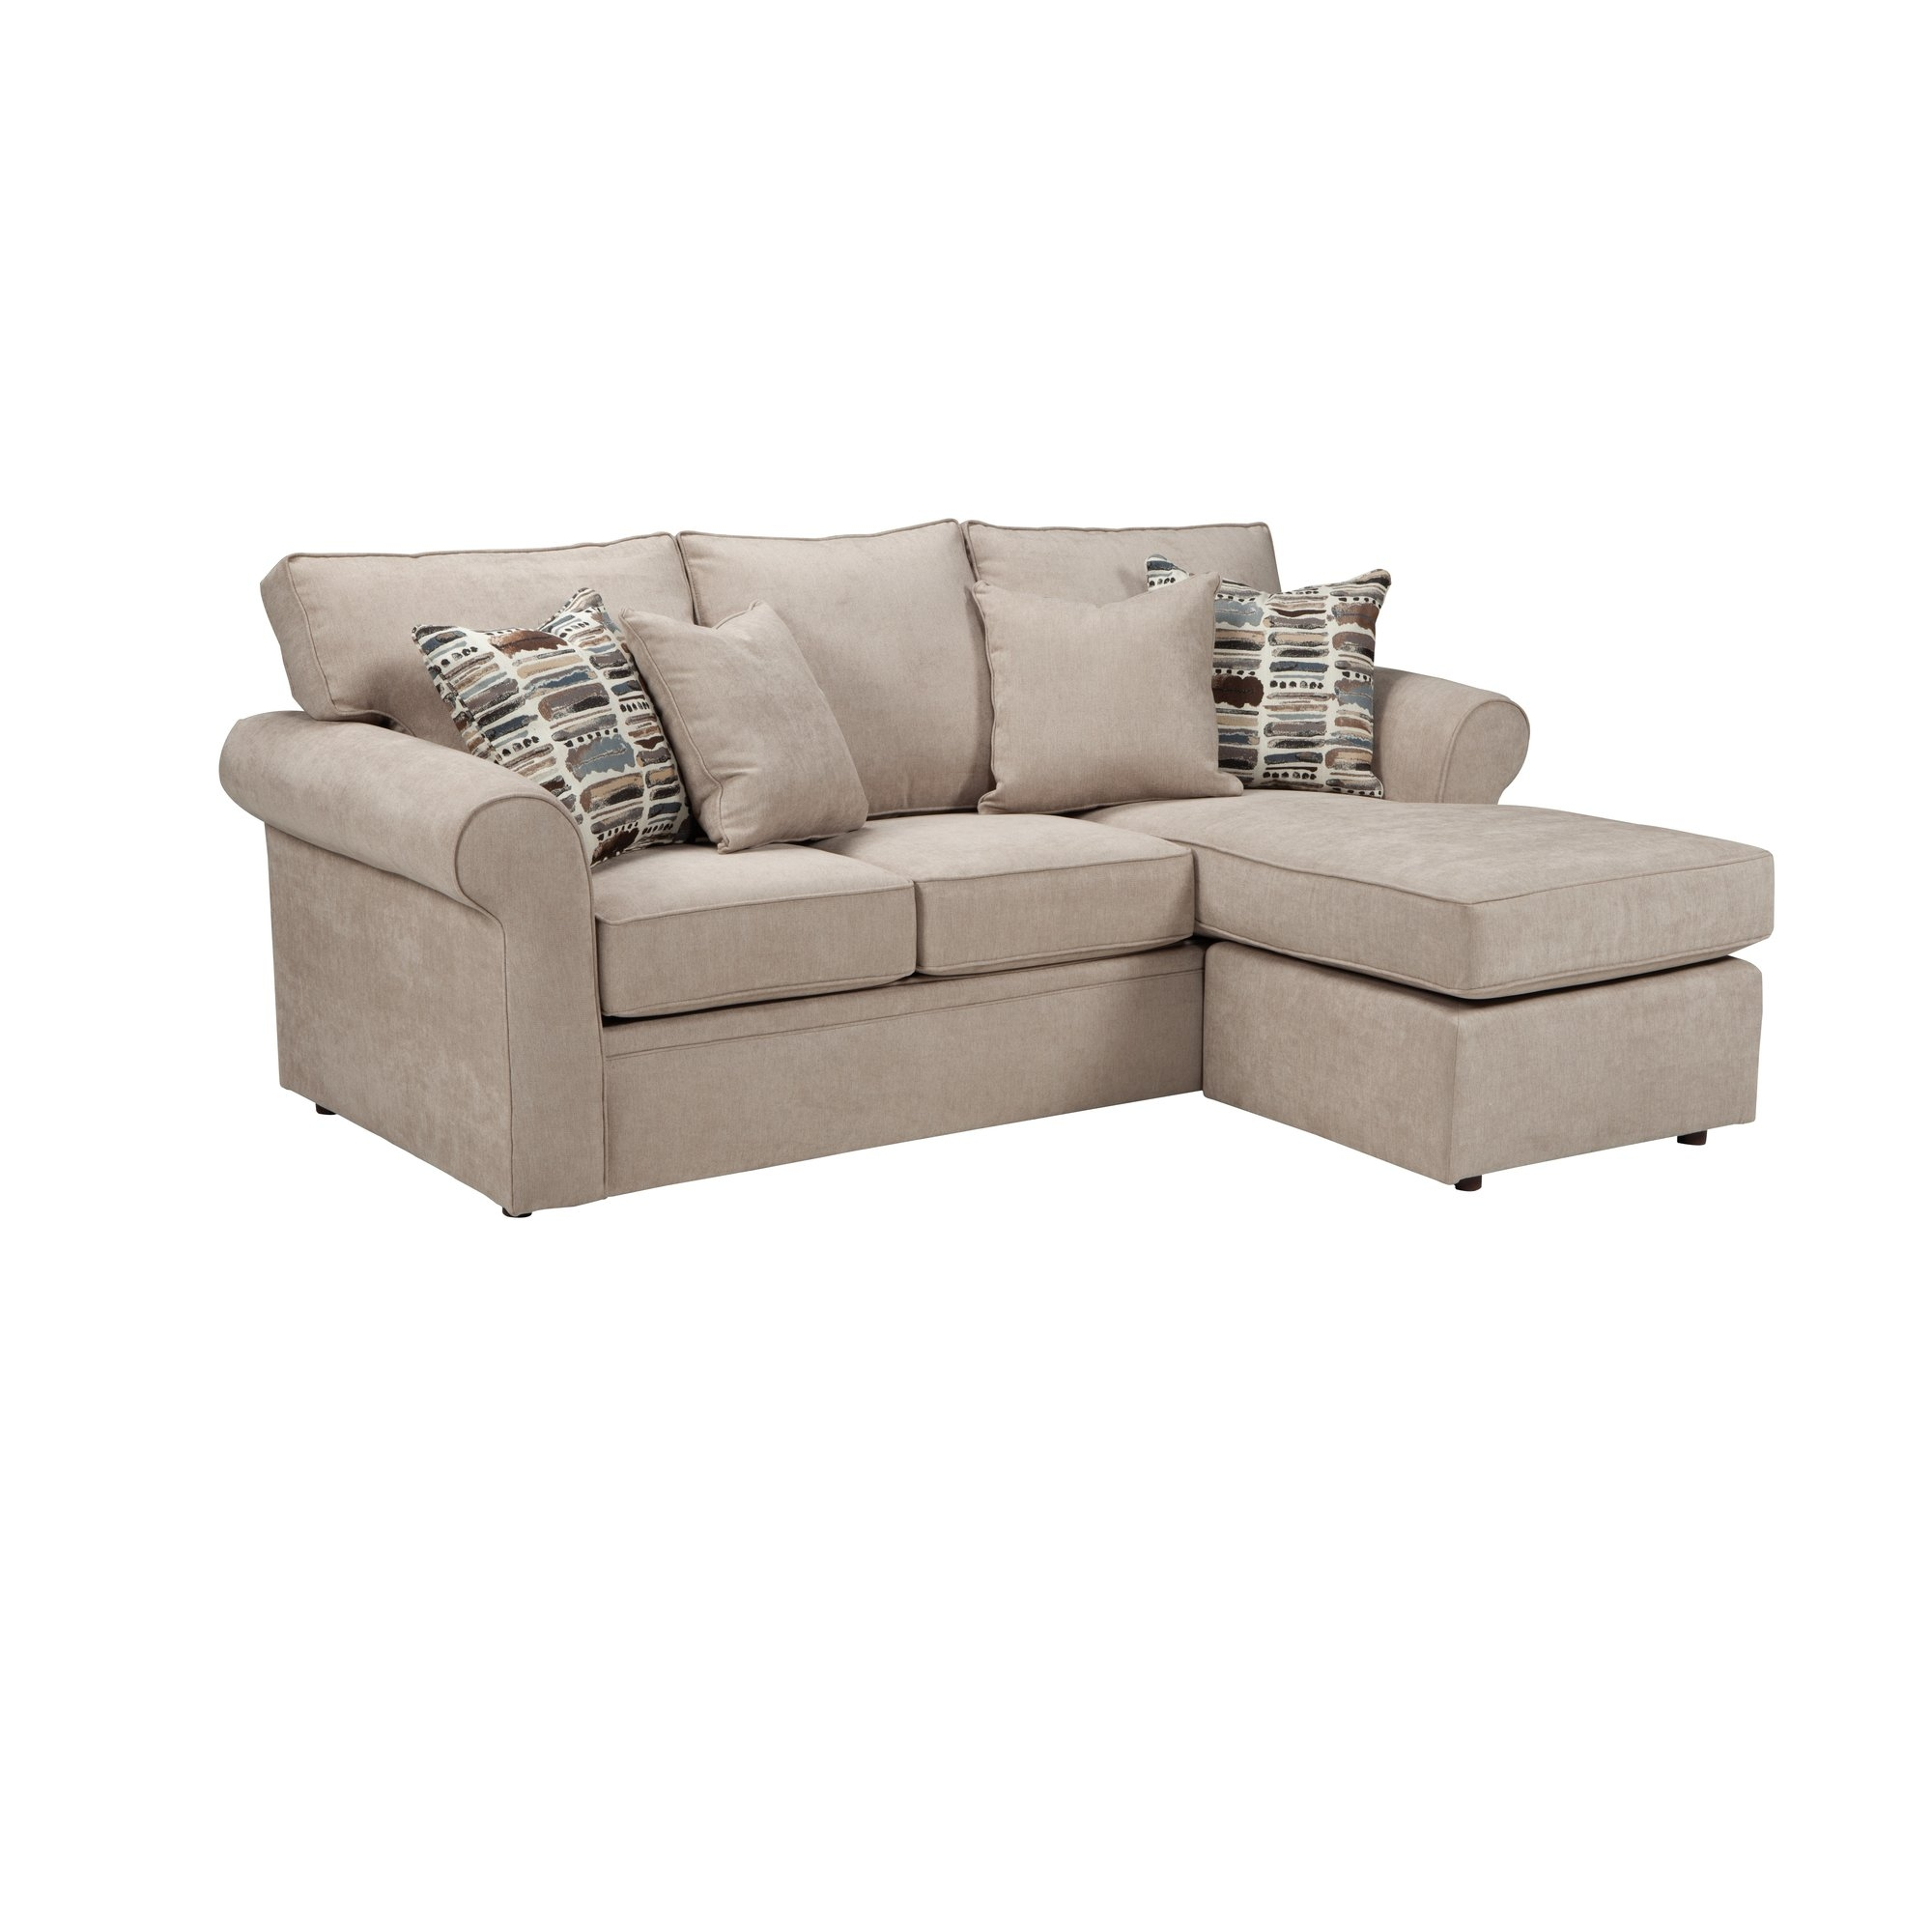 3 piece microfiber sectional sofa with chaise e saving sofas sleeper ideas